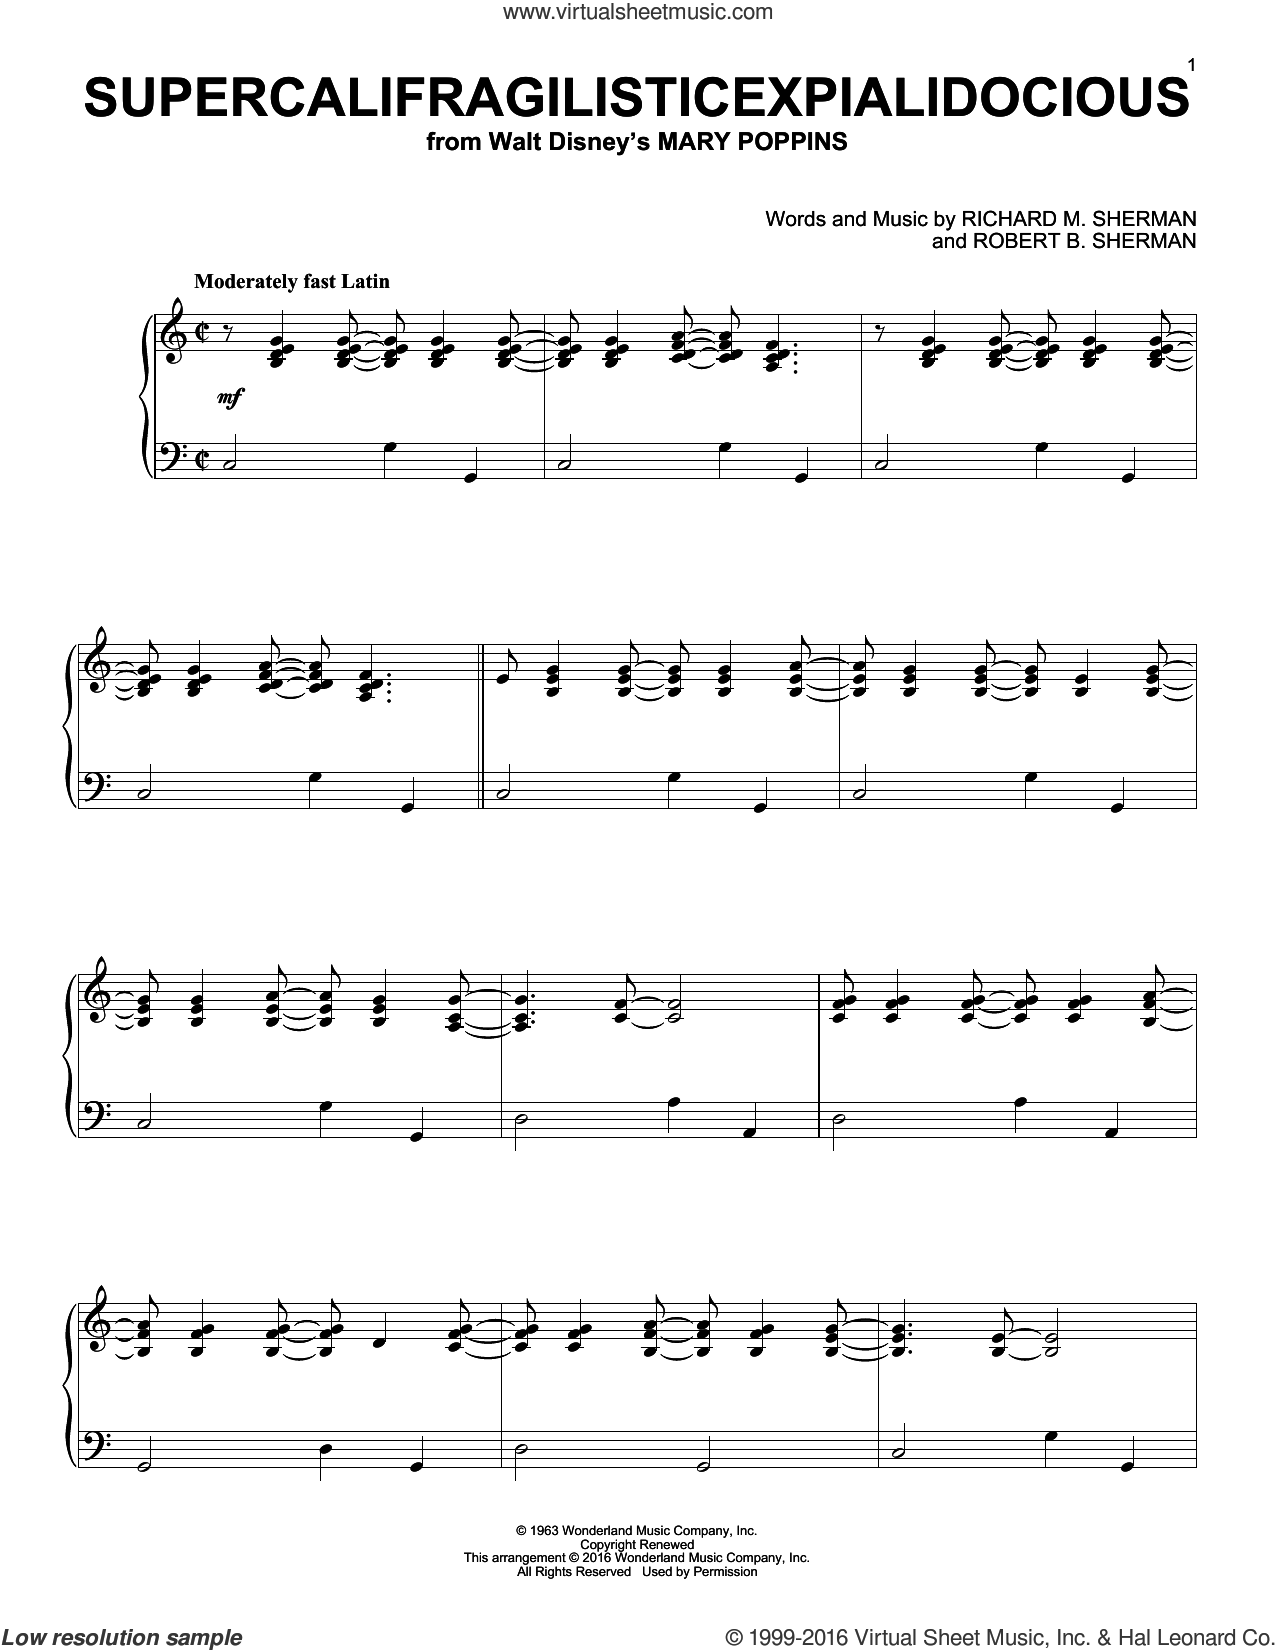 Supercalifragilisticexpialidocious sheet music for piano solo by Richard & Robert Sherman, Richard M. Sherman and Robert B. Sherman, intermediate. Score Image Preview.